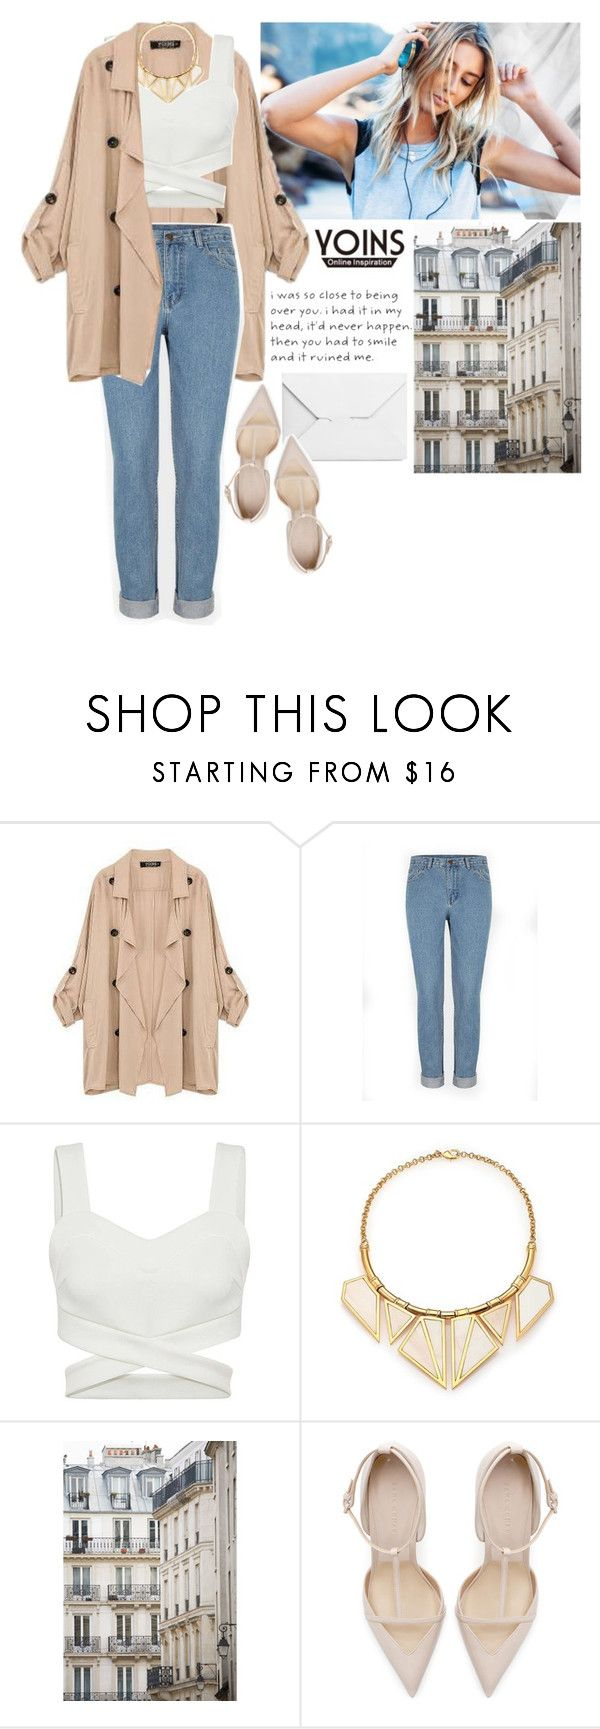 """""""Look # 553 Yoins.com"""" by lookat ❤ liked on Polyvore featuring Sabo Skirt, A Peace Treaty, Haussmann, Zara and J.W. Anderson"""